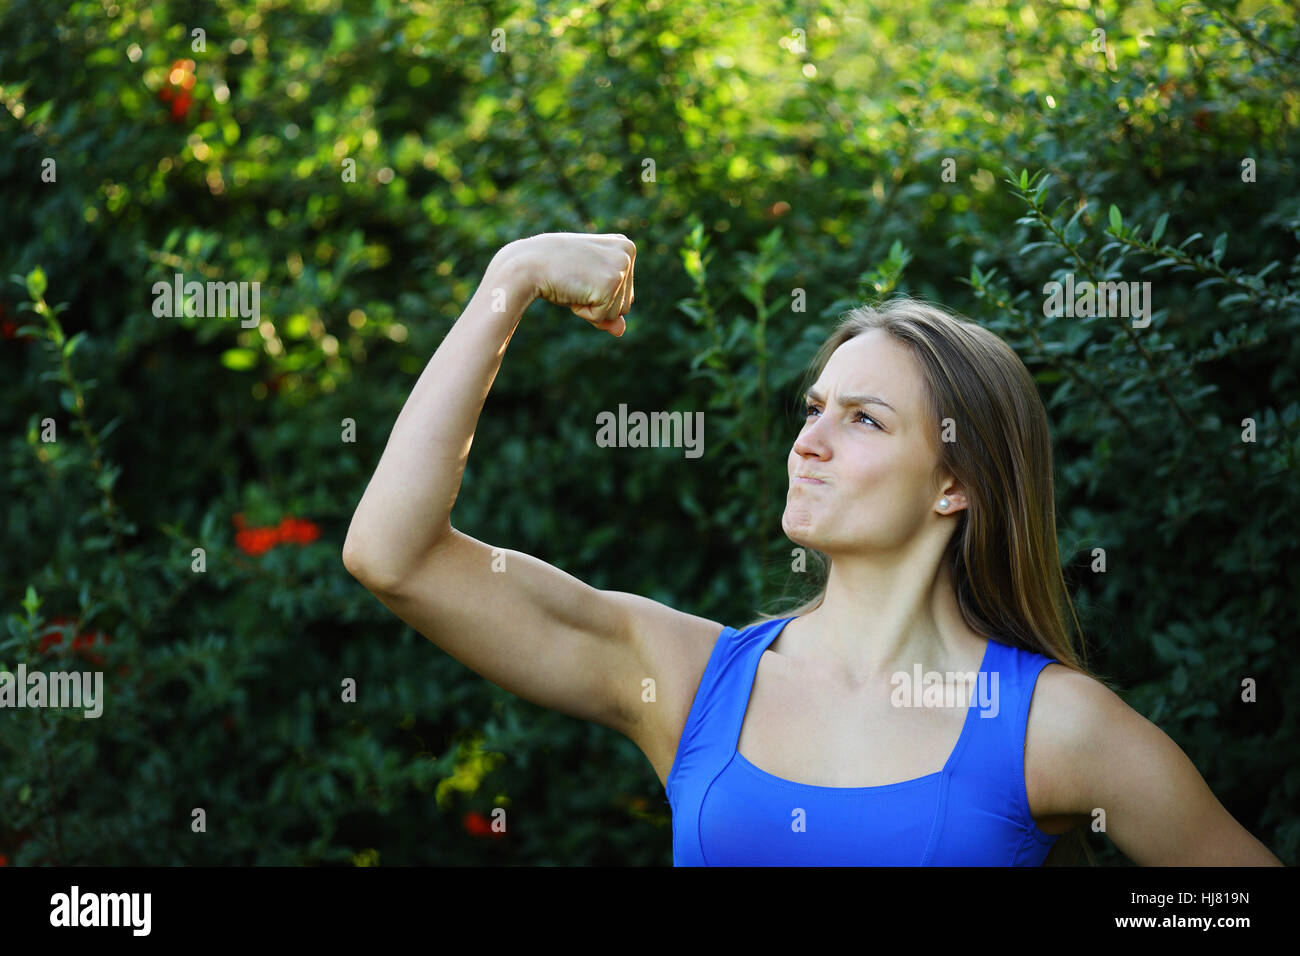 Beautiful fitness girl muscle strain on arm in nature - Stock Image